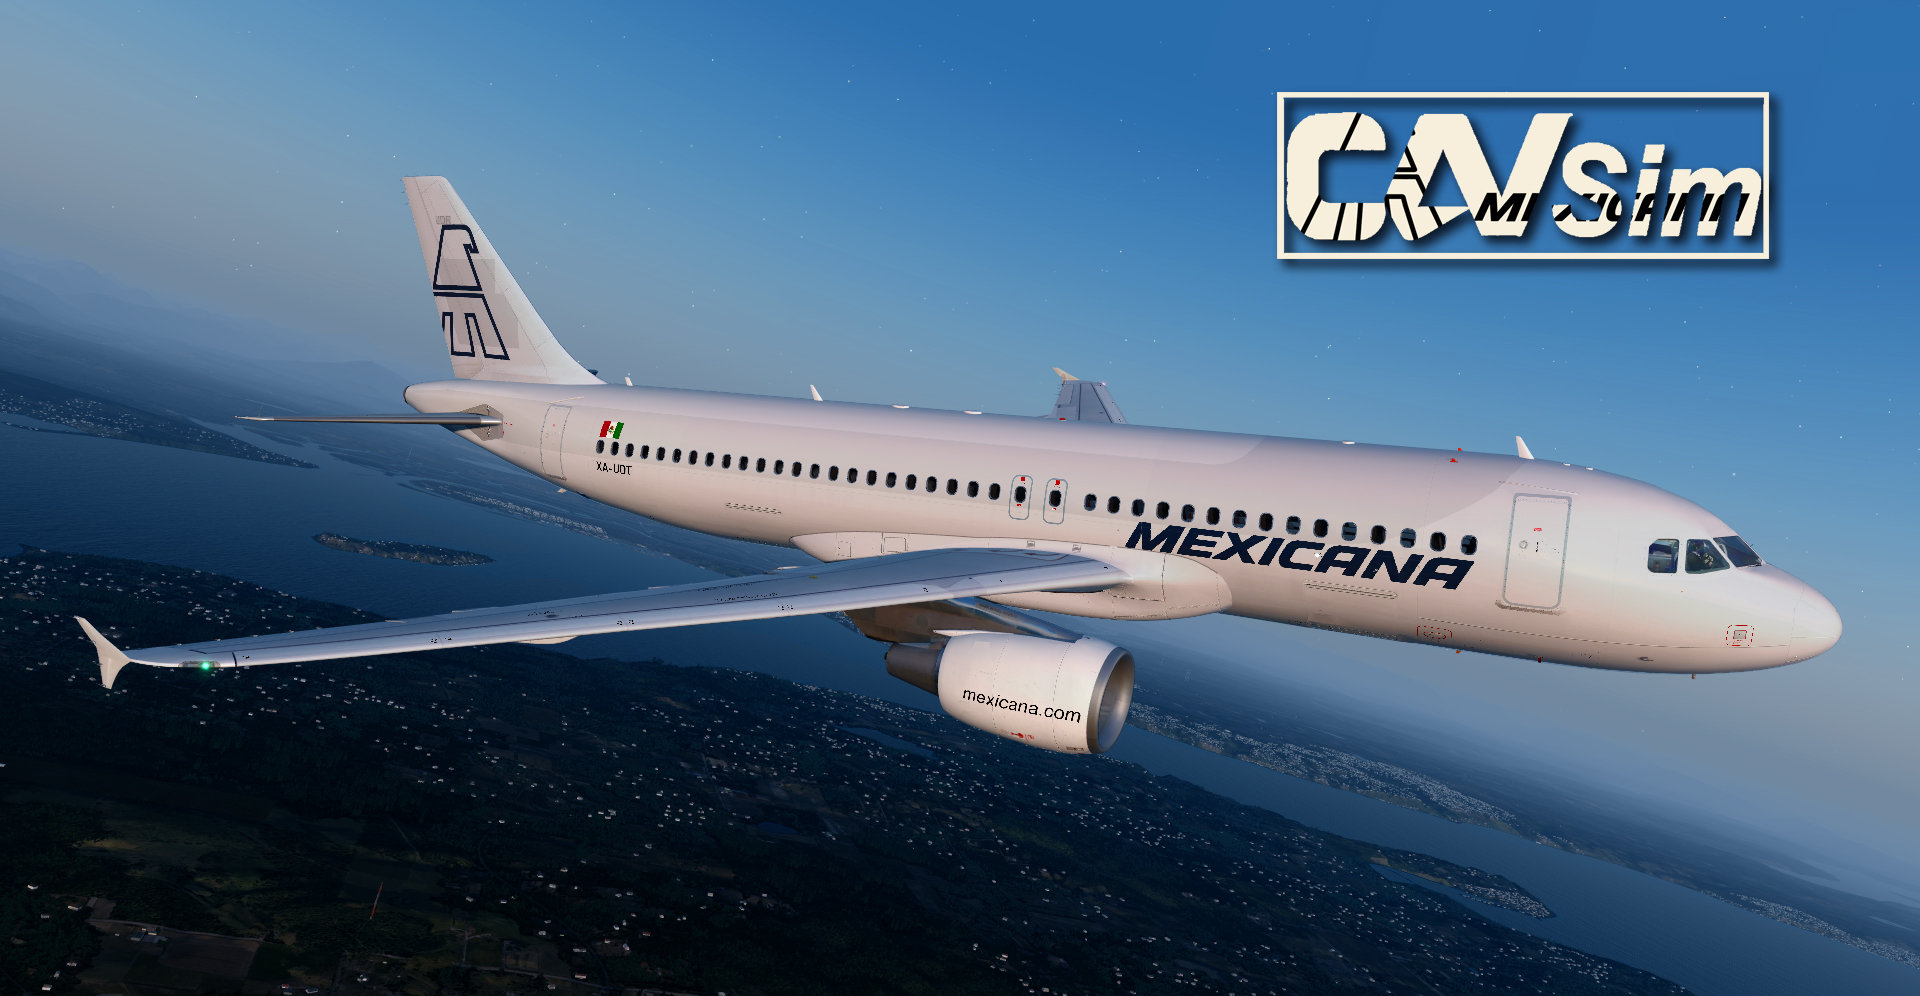 Airbus A320-214 Mexicana 'Tail White Livery' 'XA-UDT'